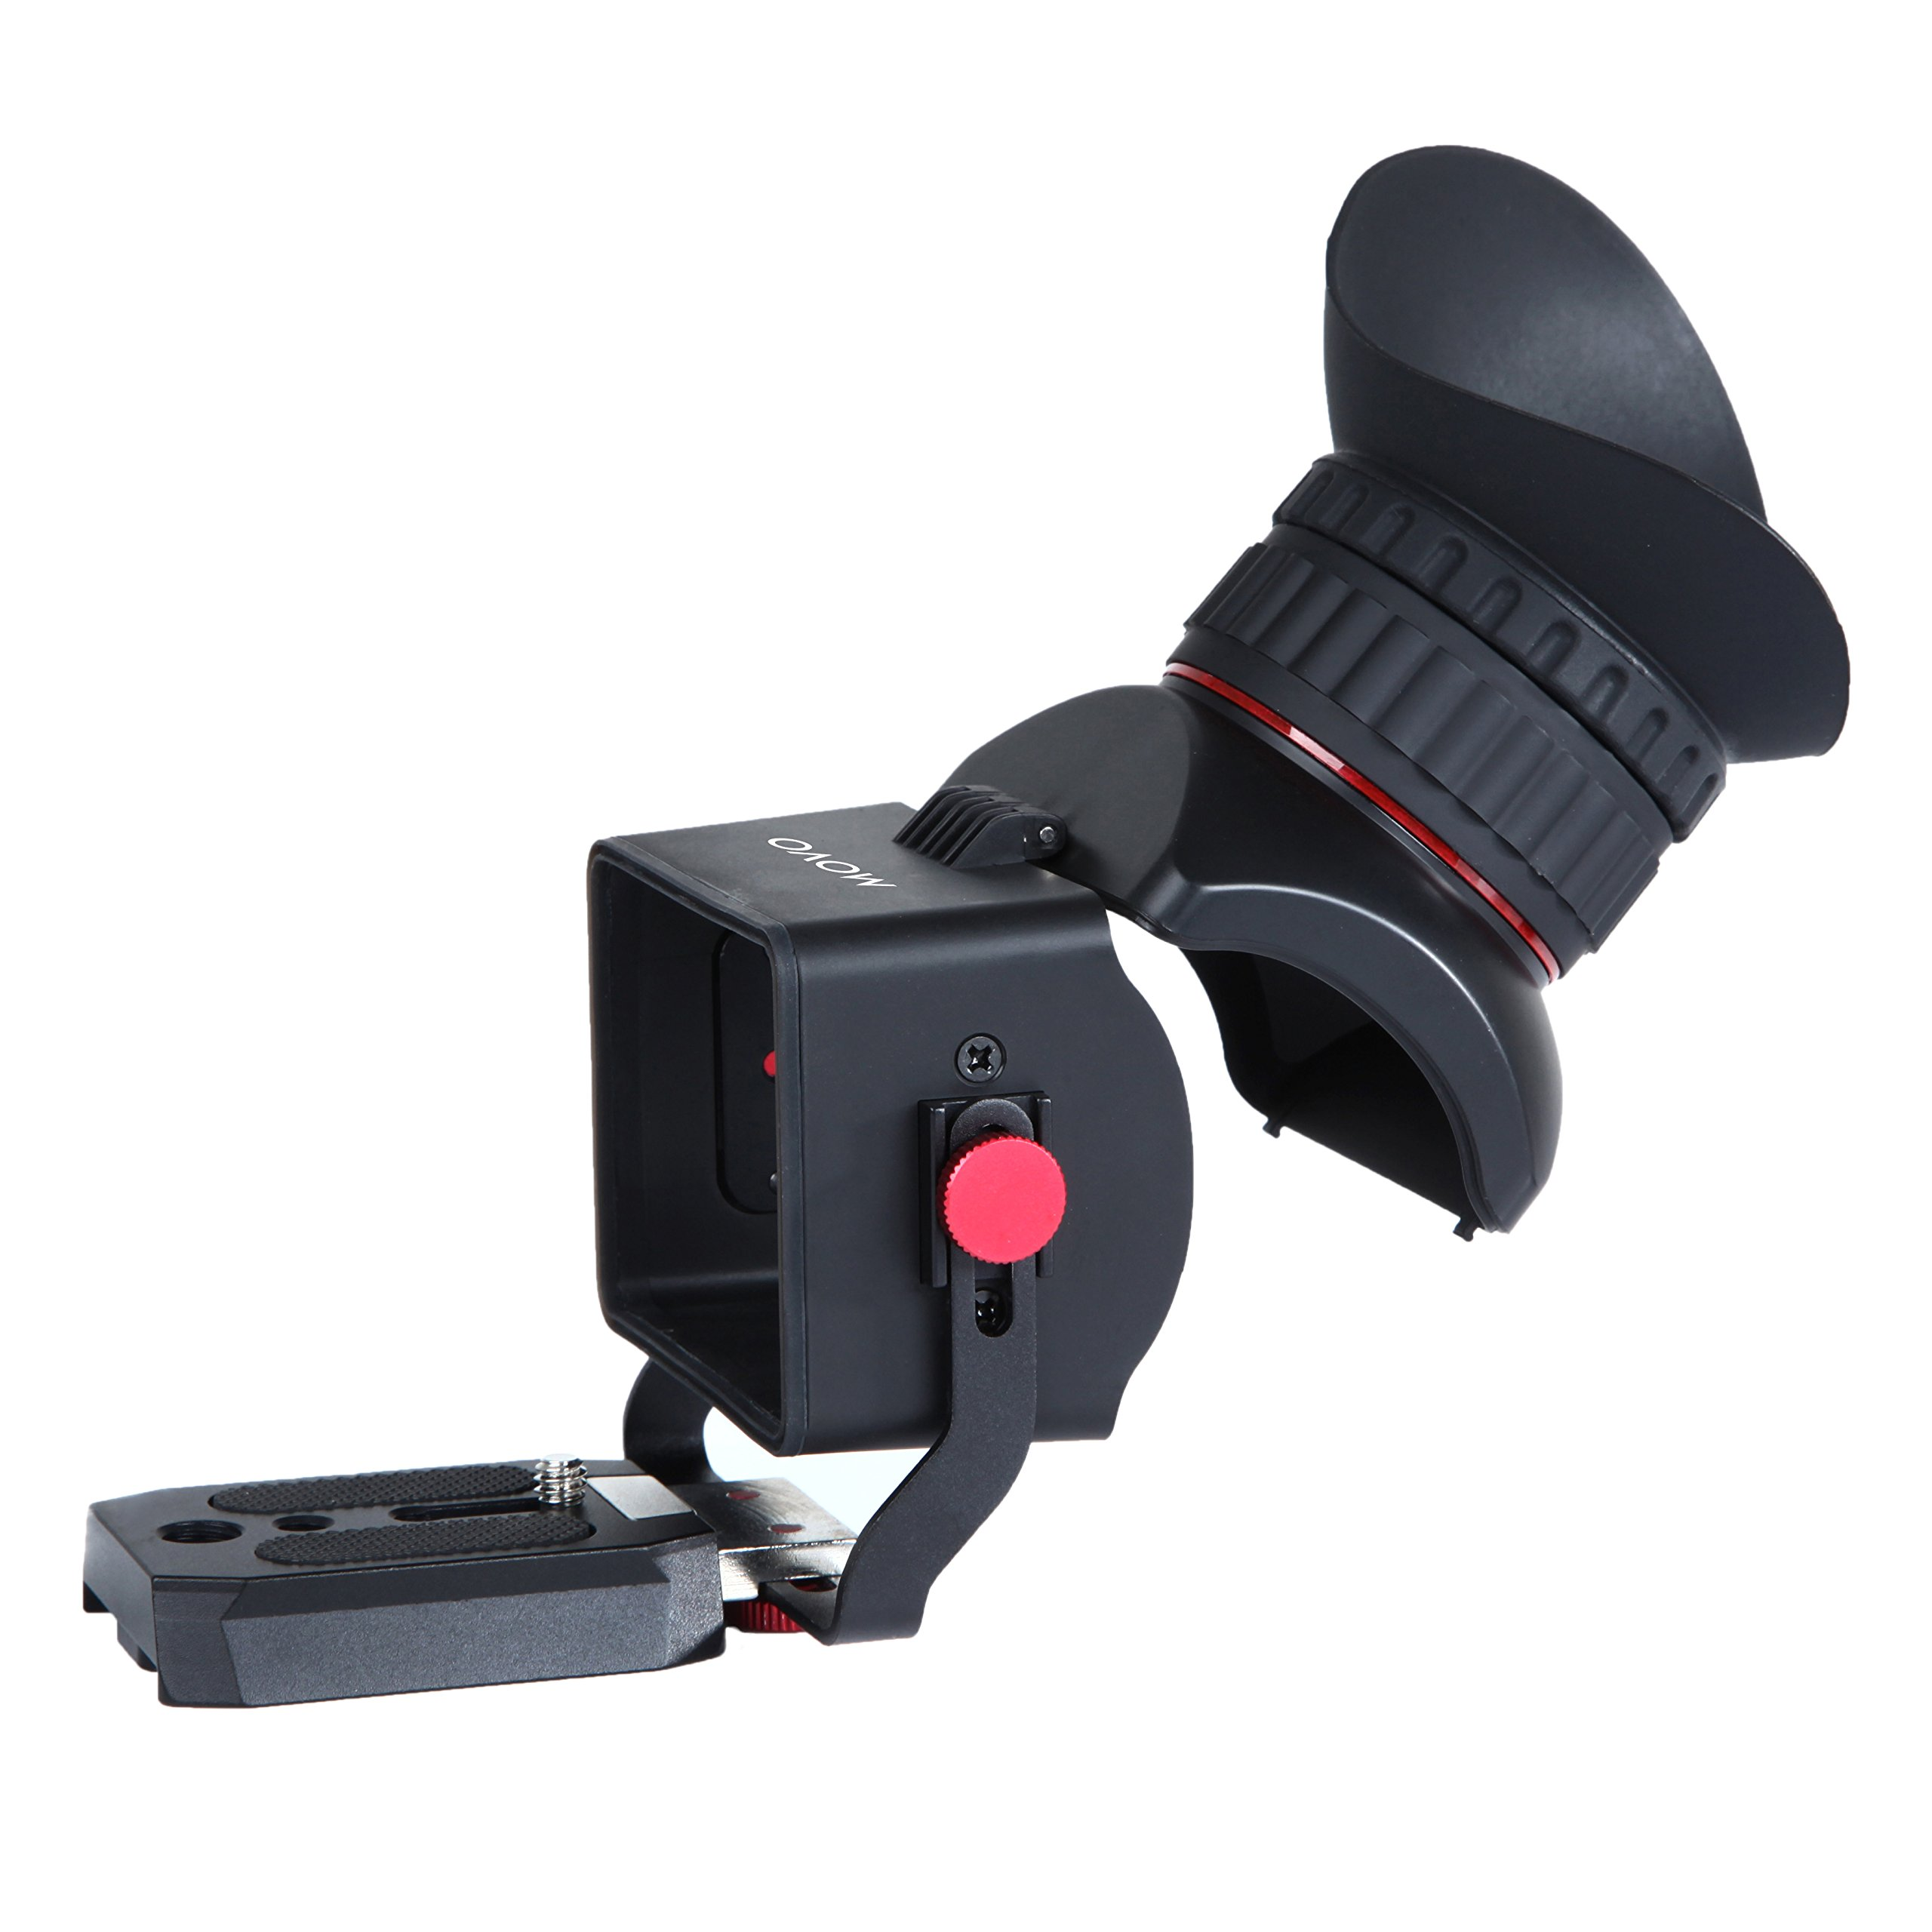 Movo Photo VF40 Universal 3X LCD Video Viewfinder with Flip-Up Eyepiece for Canon EOS, Nikon, Sony Alpha, Olympus & Pentax DSLR Cameras - Fits 3''-3.2'' Screens